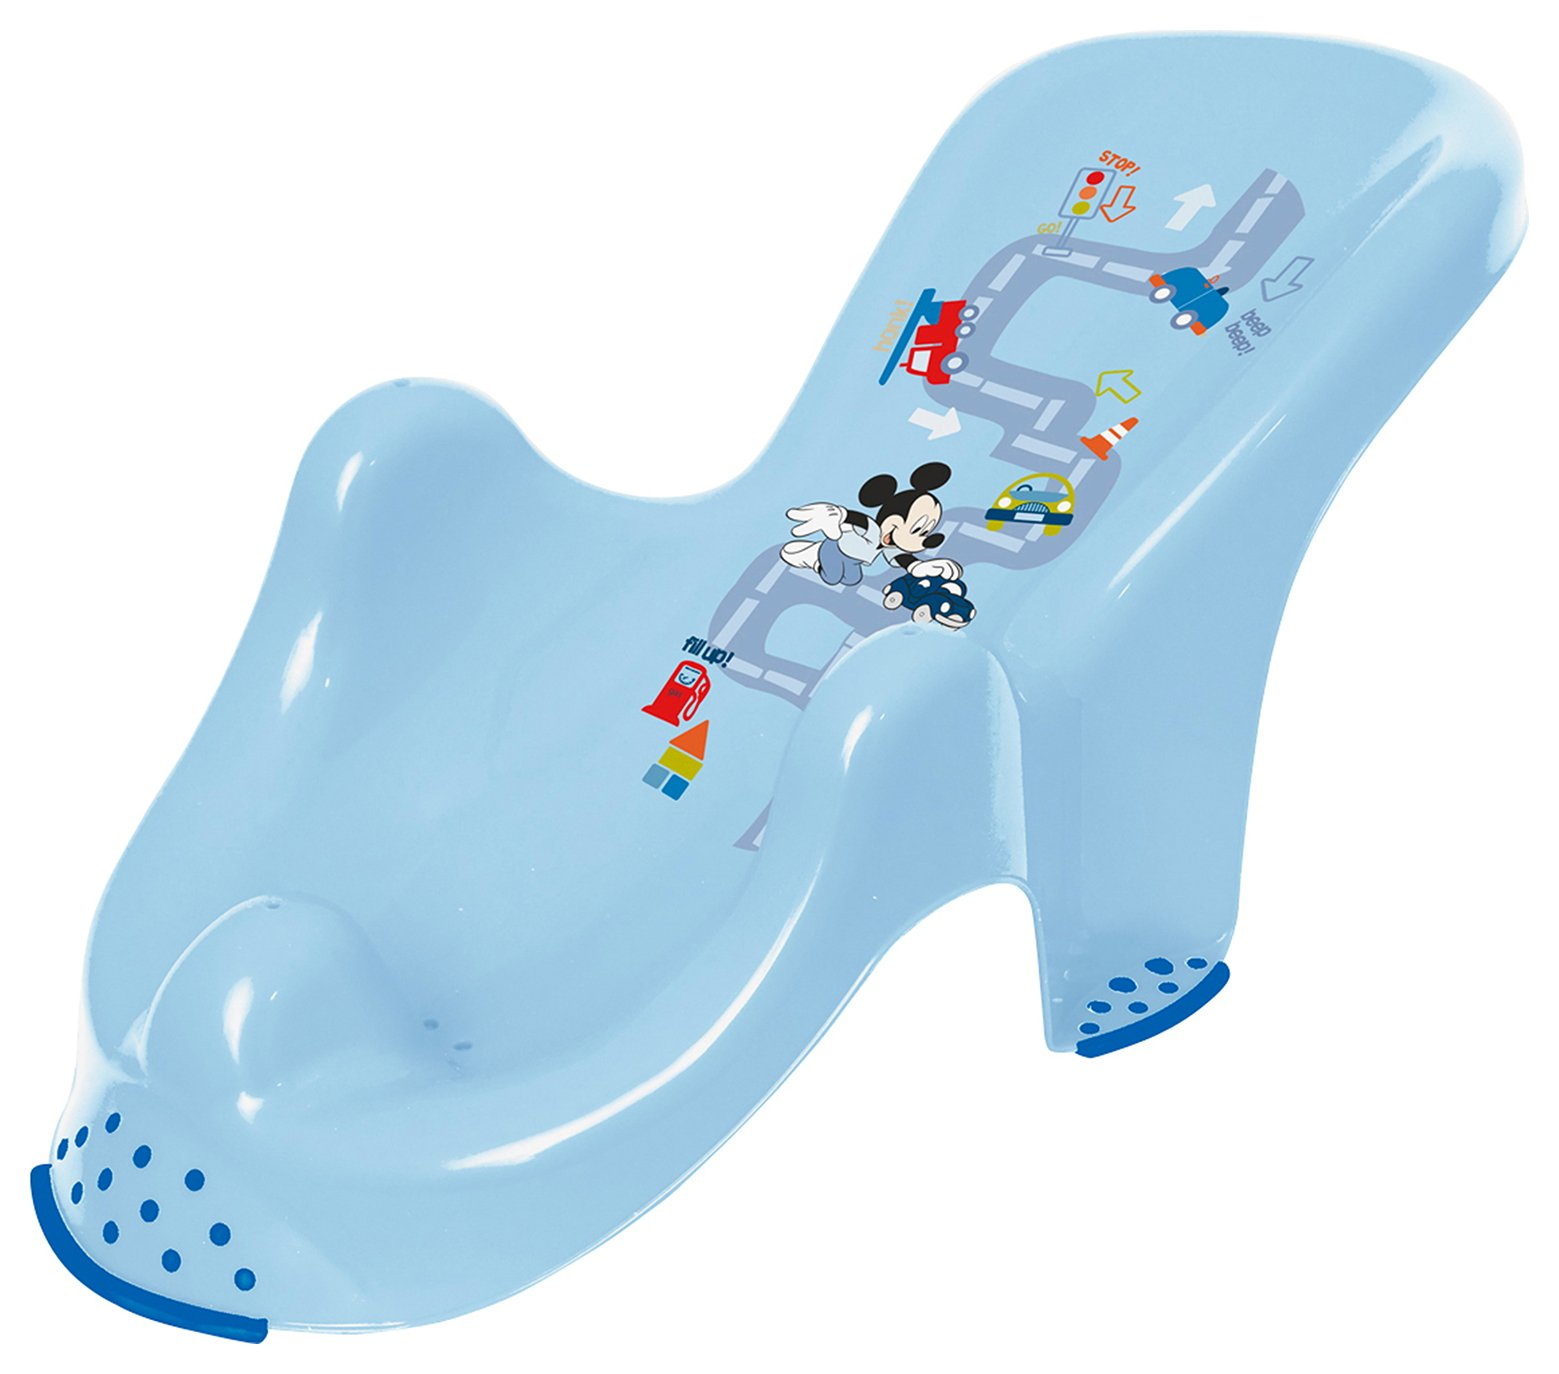 bath chair for baby dark brown leather buy disney mickey mouse accessories argos click to zoom